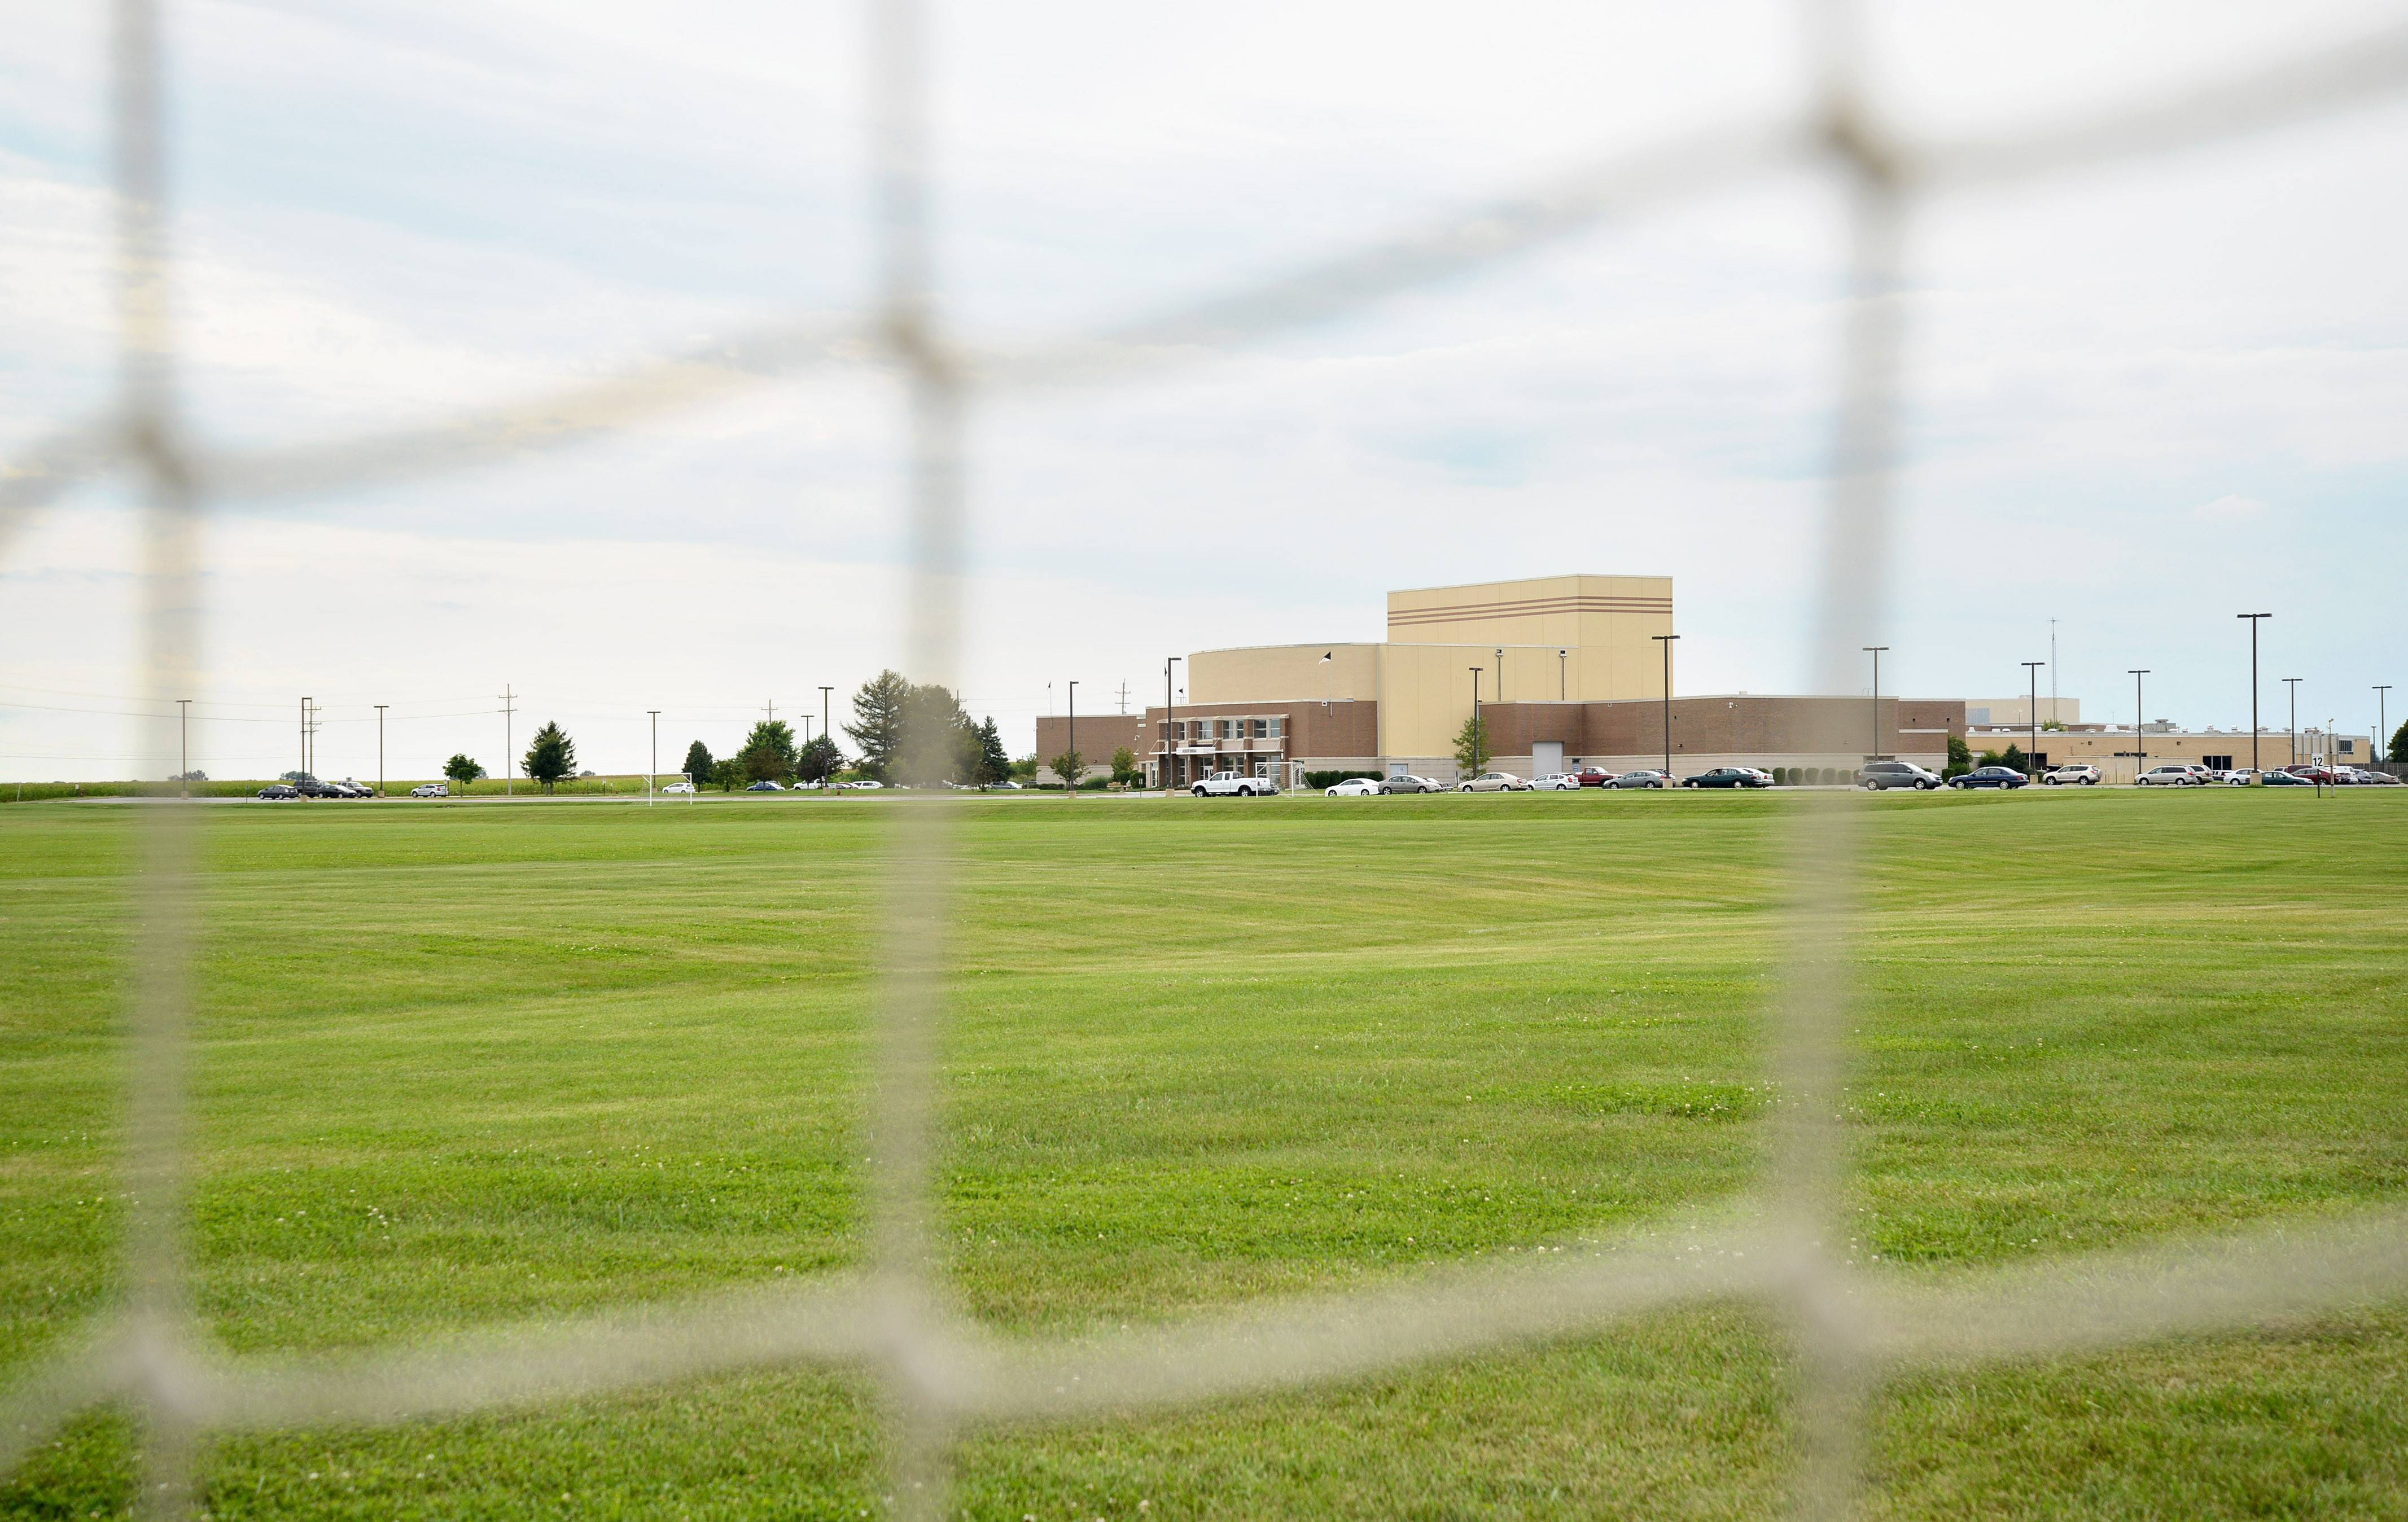 The Kaneland Youth Soccer Organization fields on Kaneland High School property, as well as fields farmed by the school's Future Farmers of America club, will be closed from September until mid-November, as TransCanada replaces three natural-gas transmission lines beneath the properties.